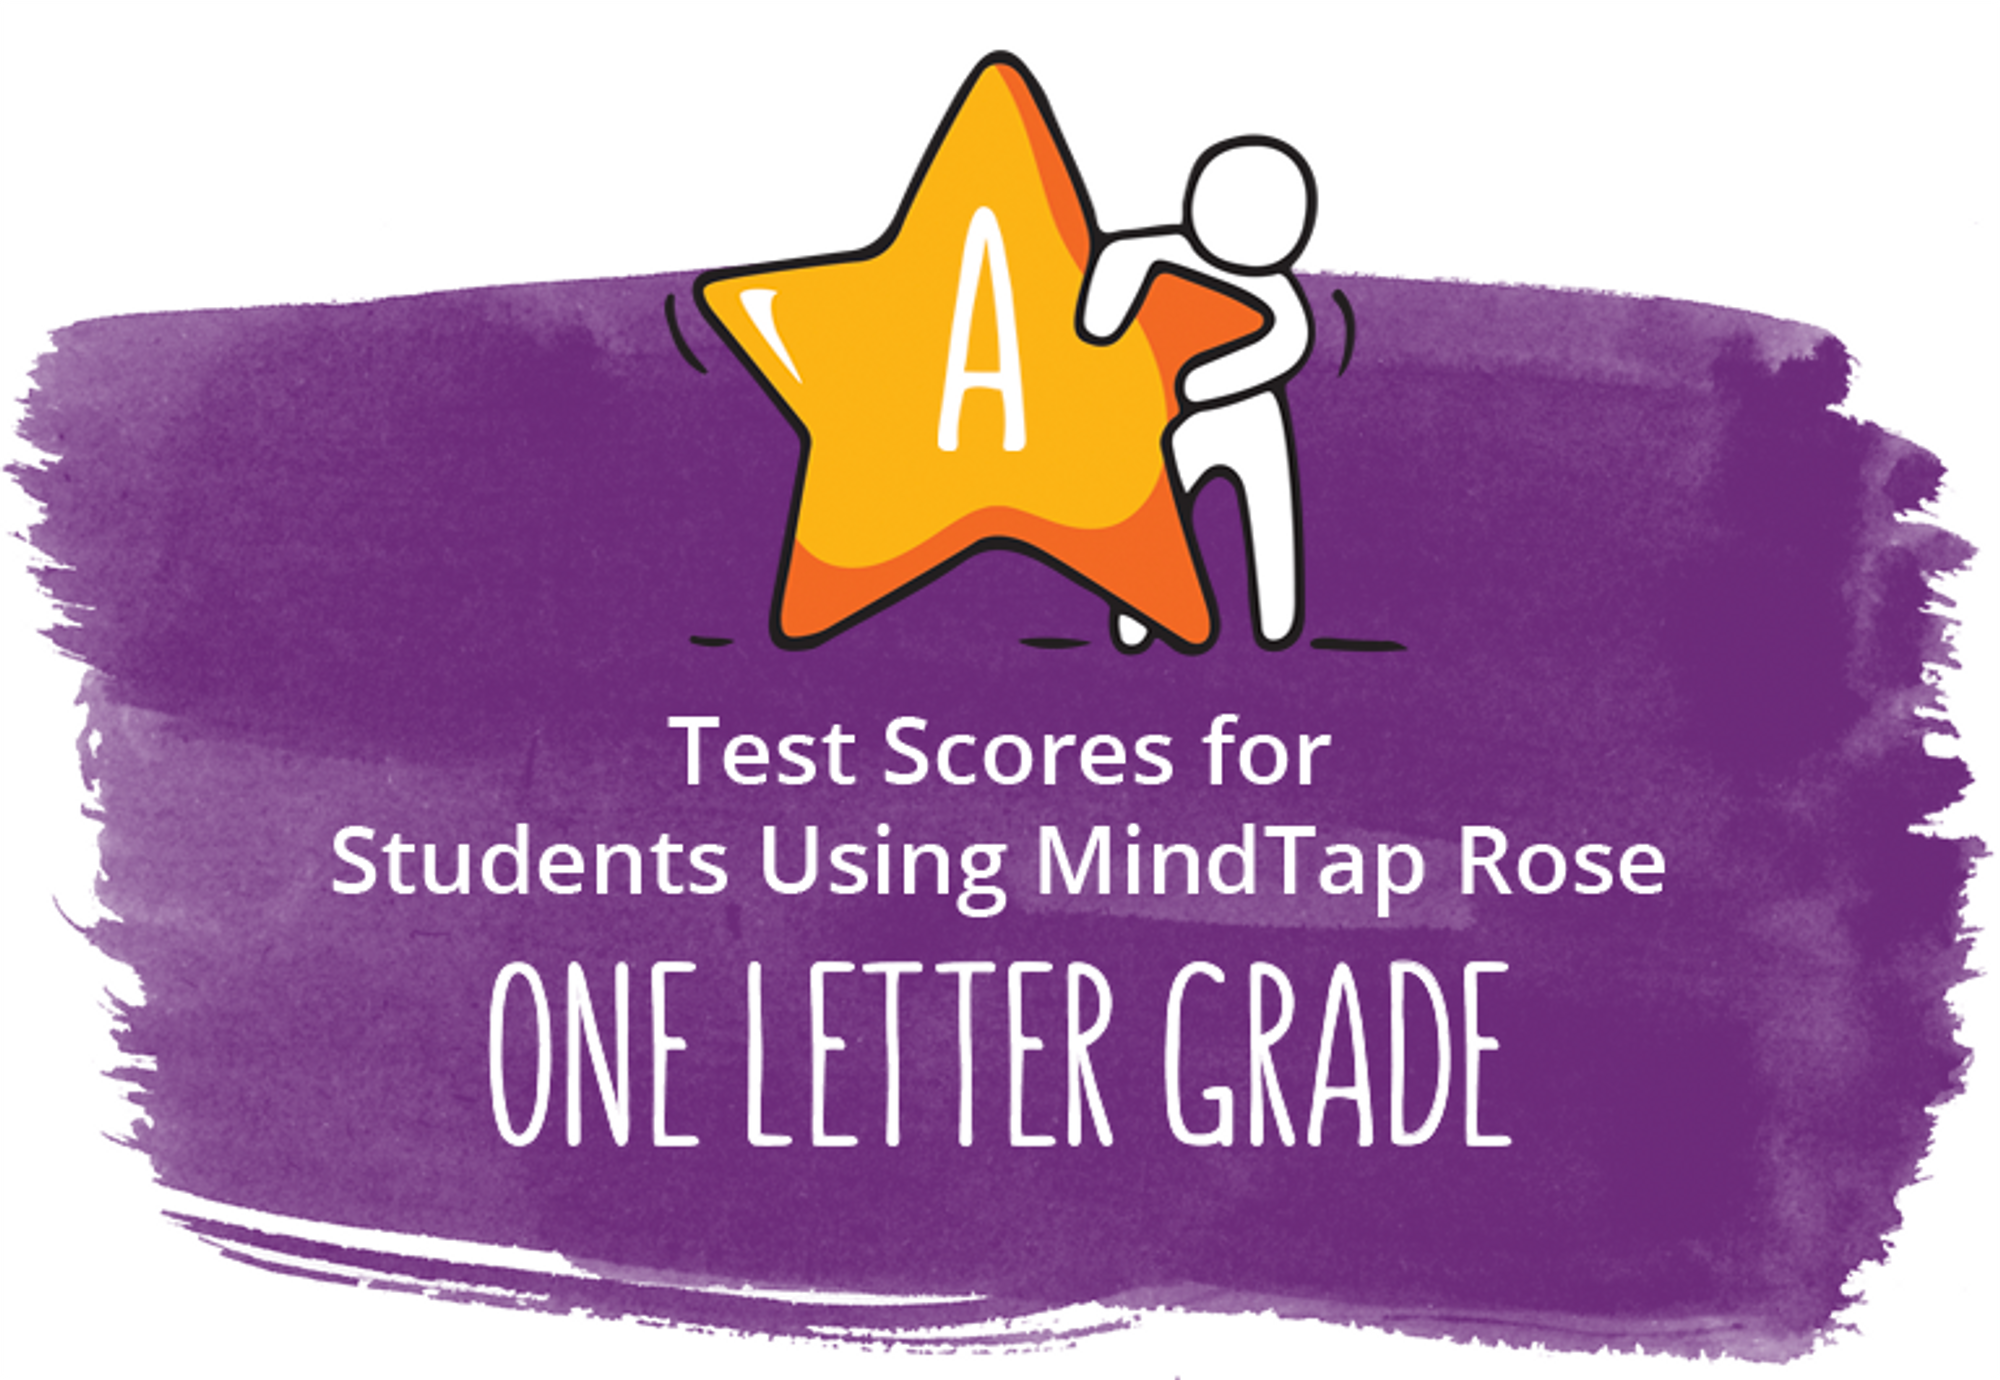 Test scores for students using MindTap rose one letter grade